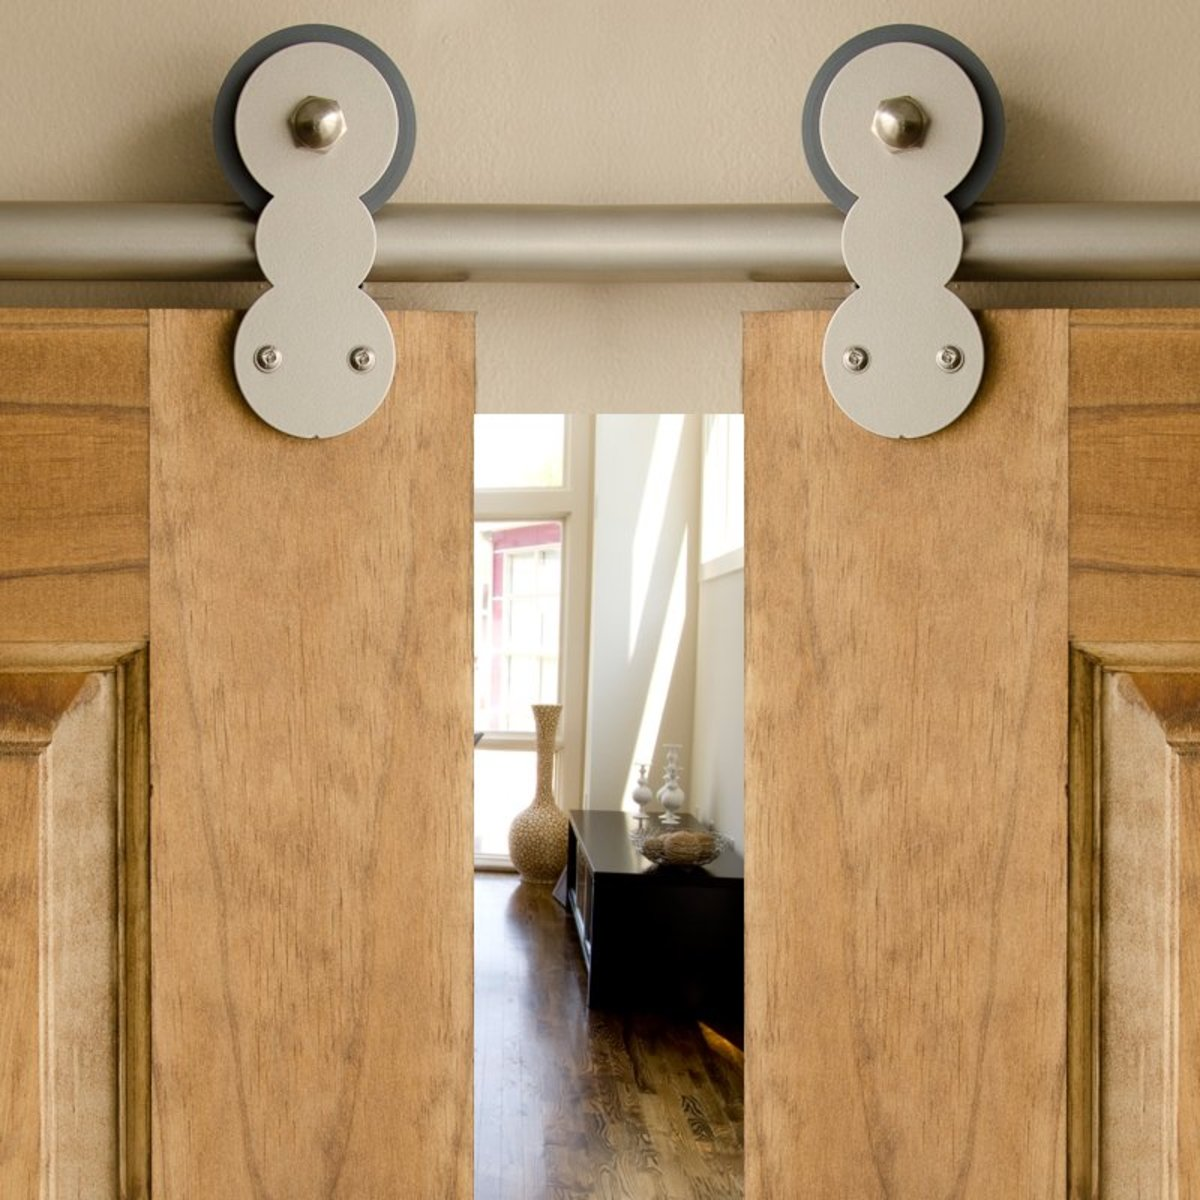 Is an Interior Barn Door Right for Your Home?